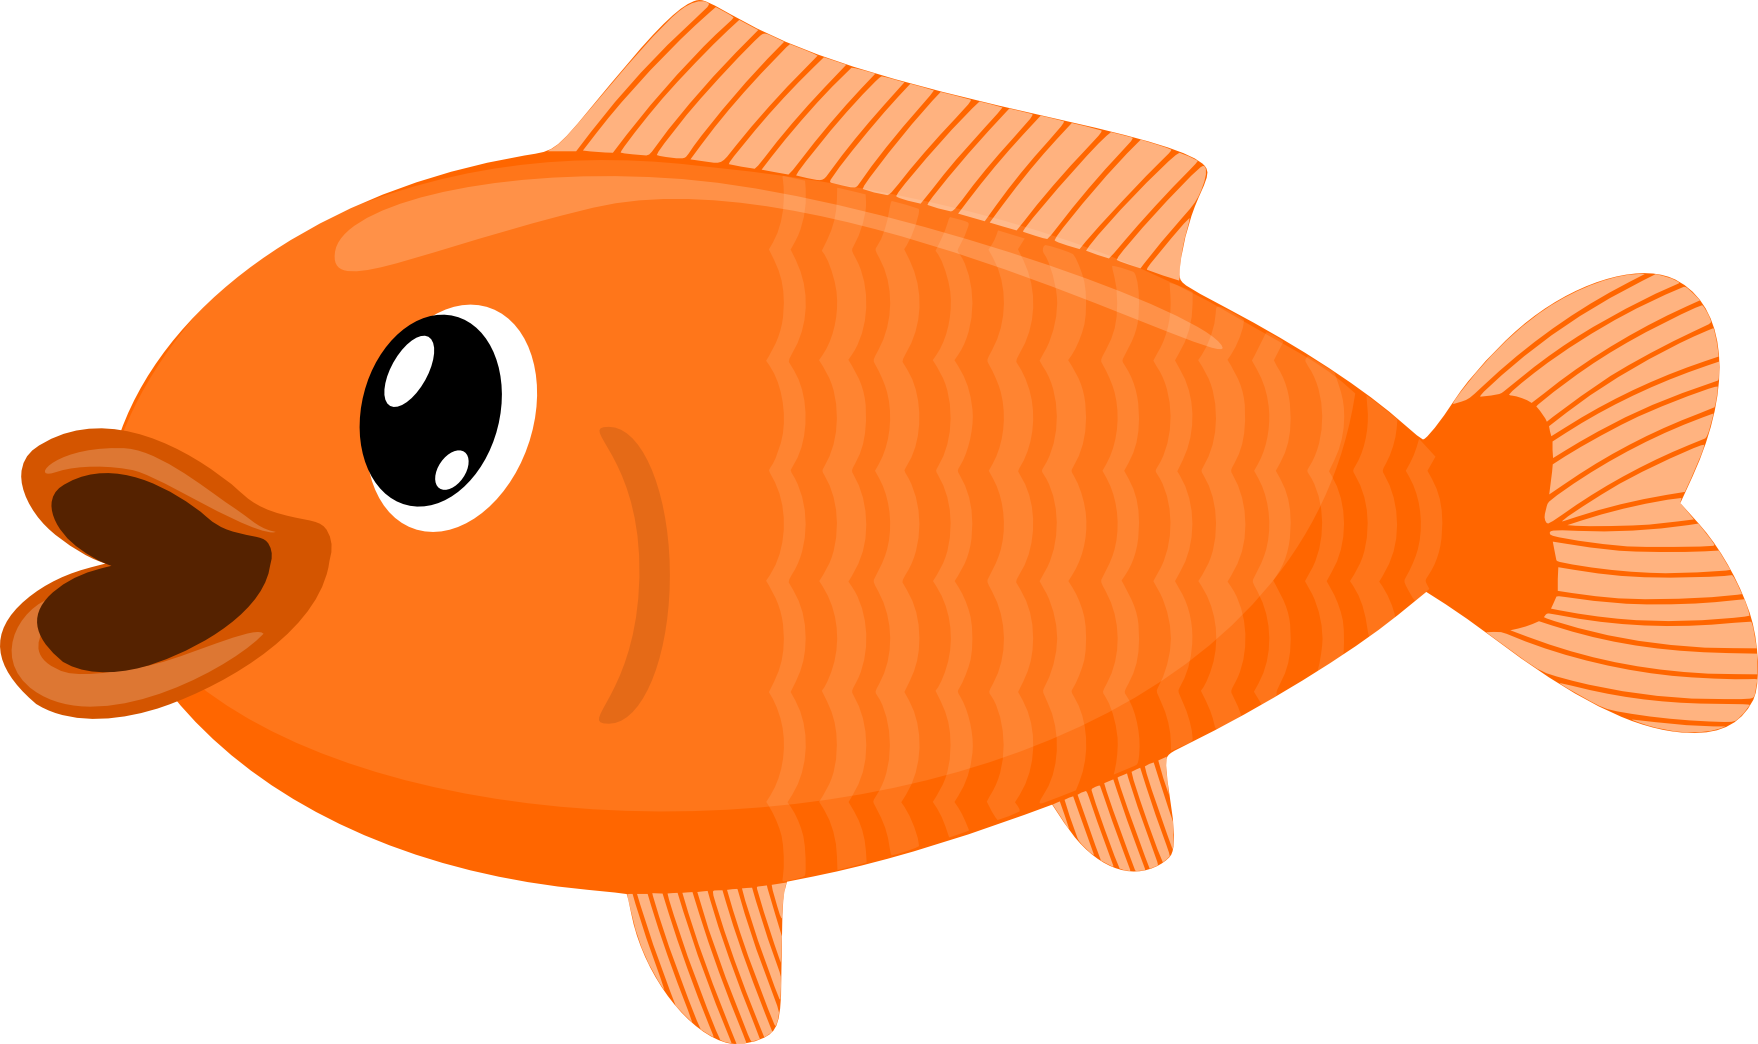 Goldfish with crown clipart banner royalty free library Koi Fish Clipart at GetDrawings.com | Free for personal use Koi Fish ... banner royalty free library